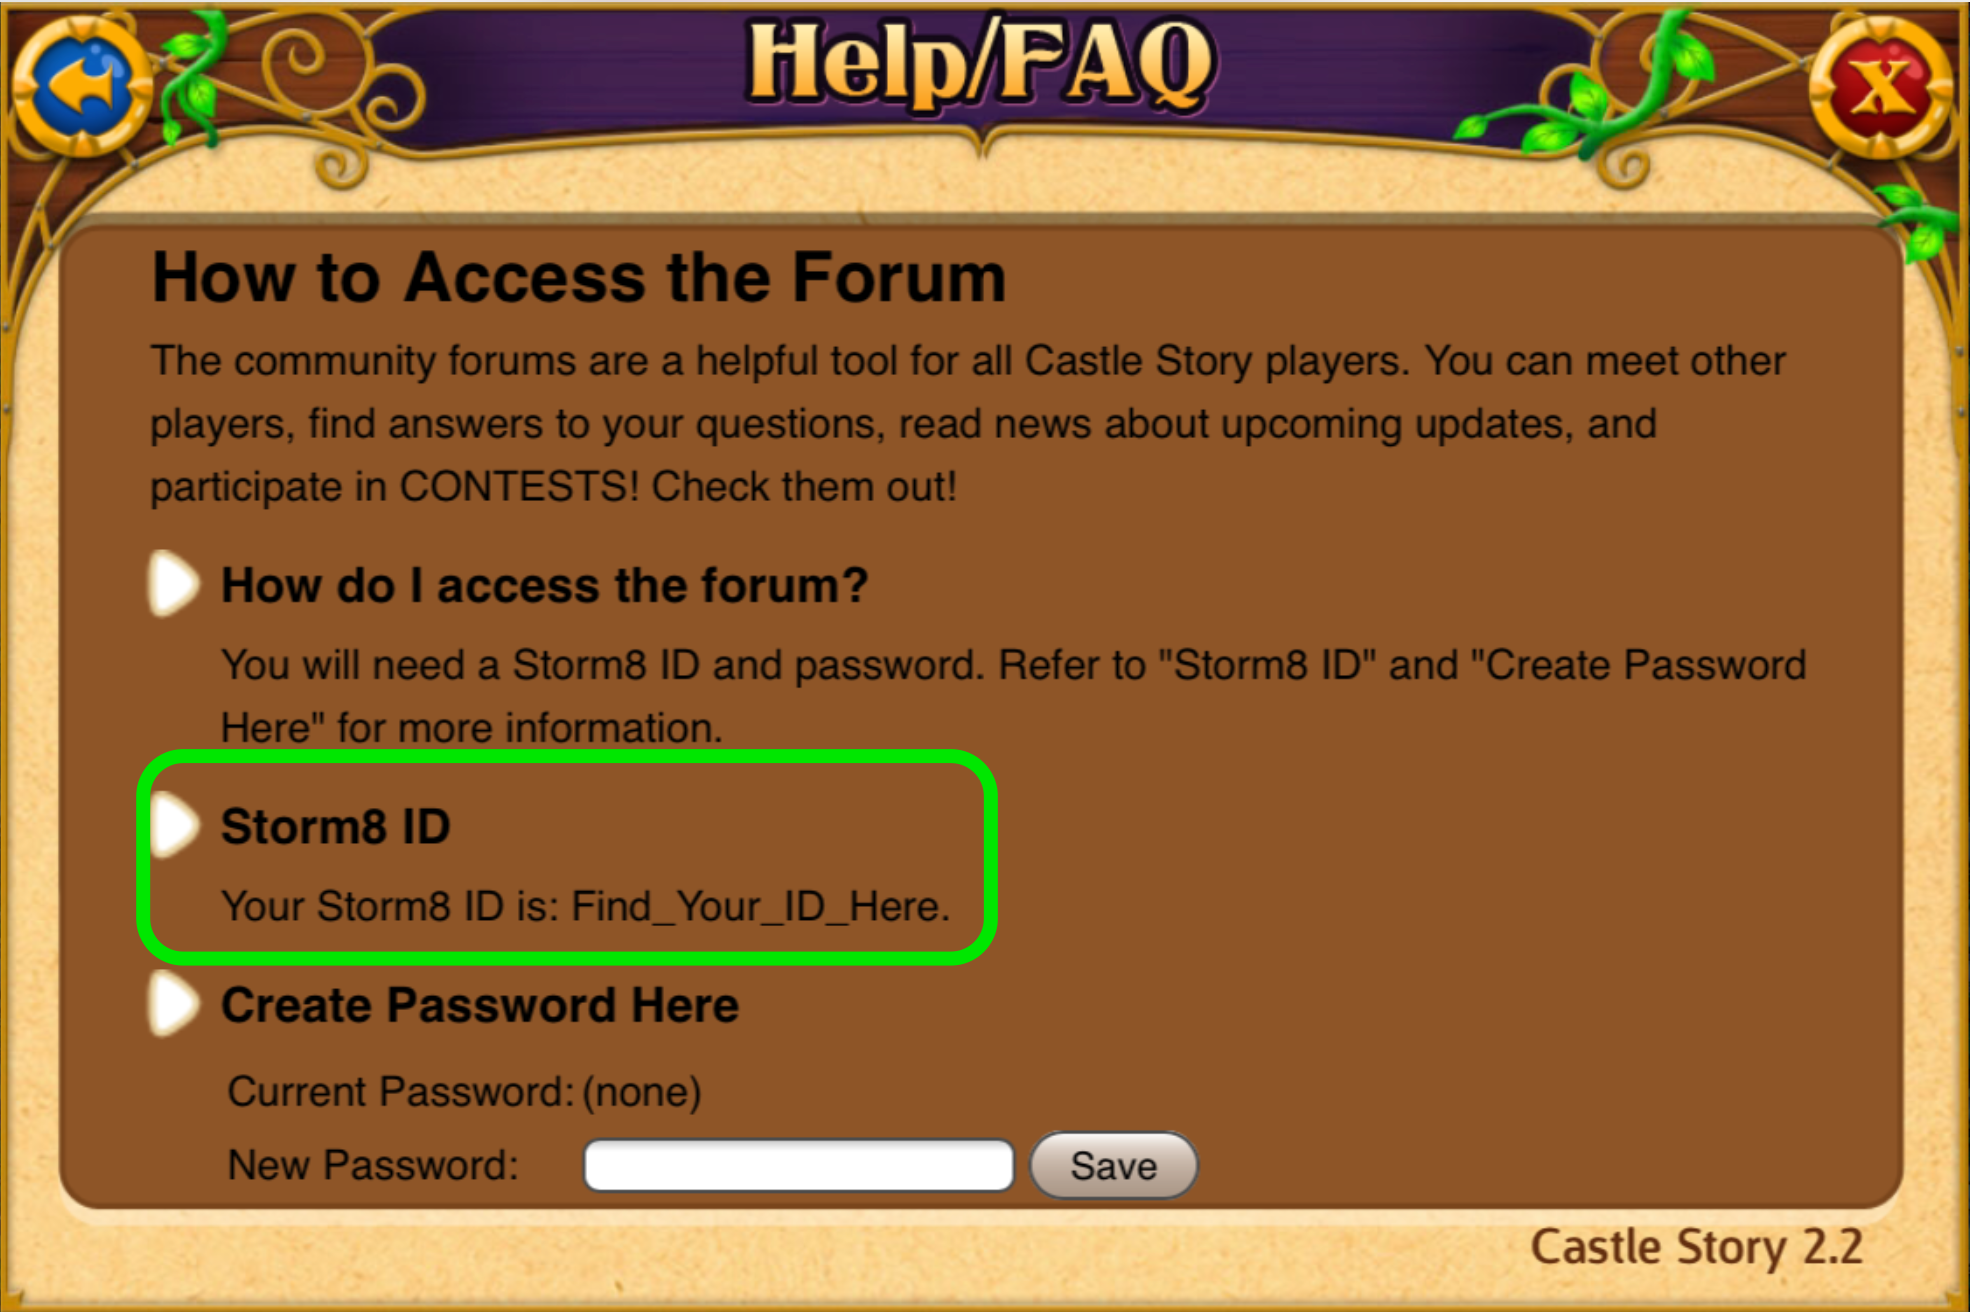 how to find storm8 id